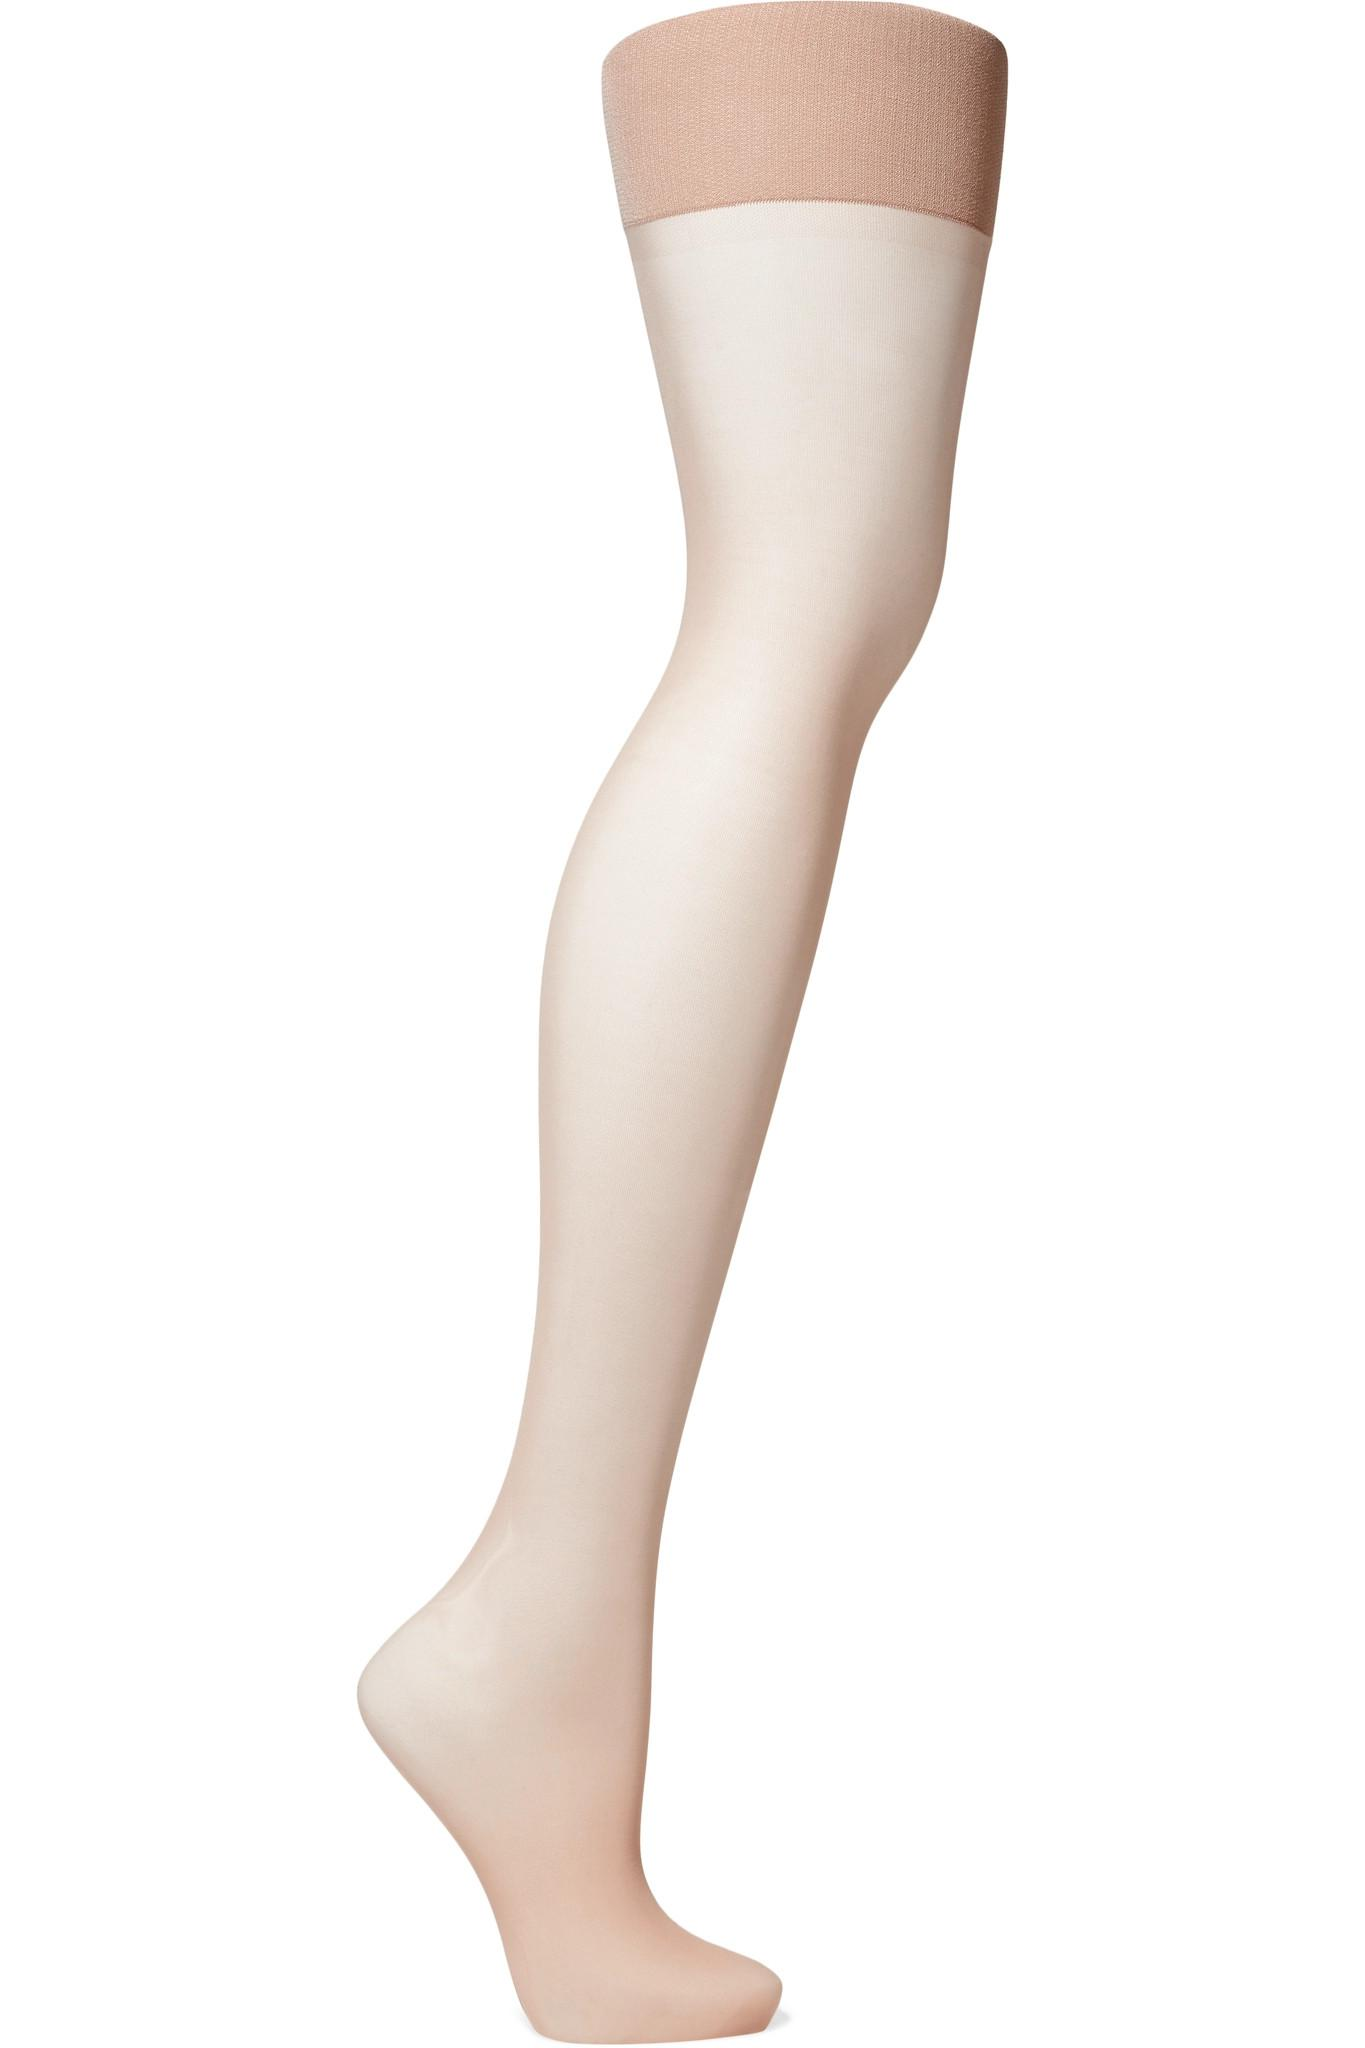 c8f5f95eed0 Spanx. Women s Luxe Leg High-rise 15 Denier Shaping Tights